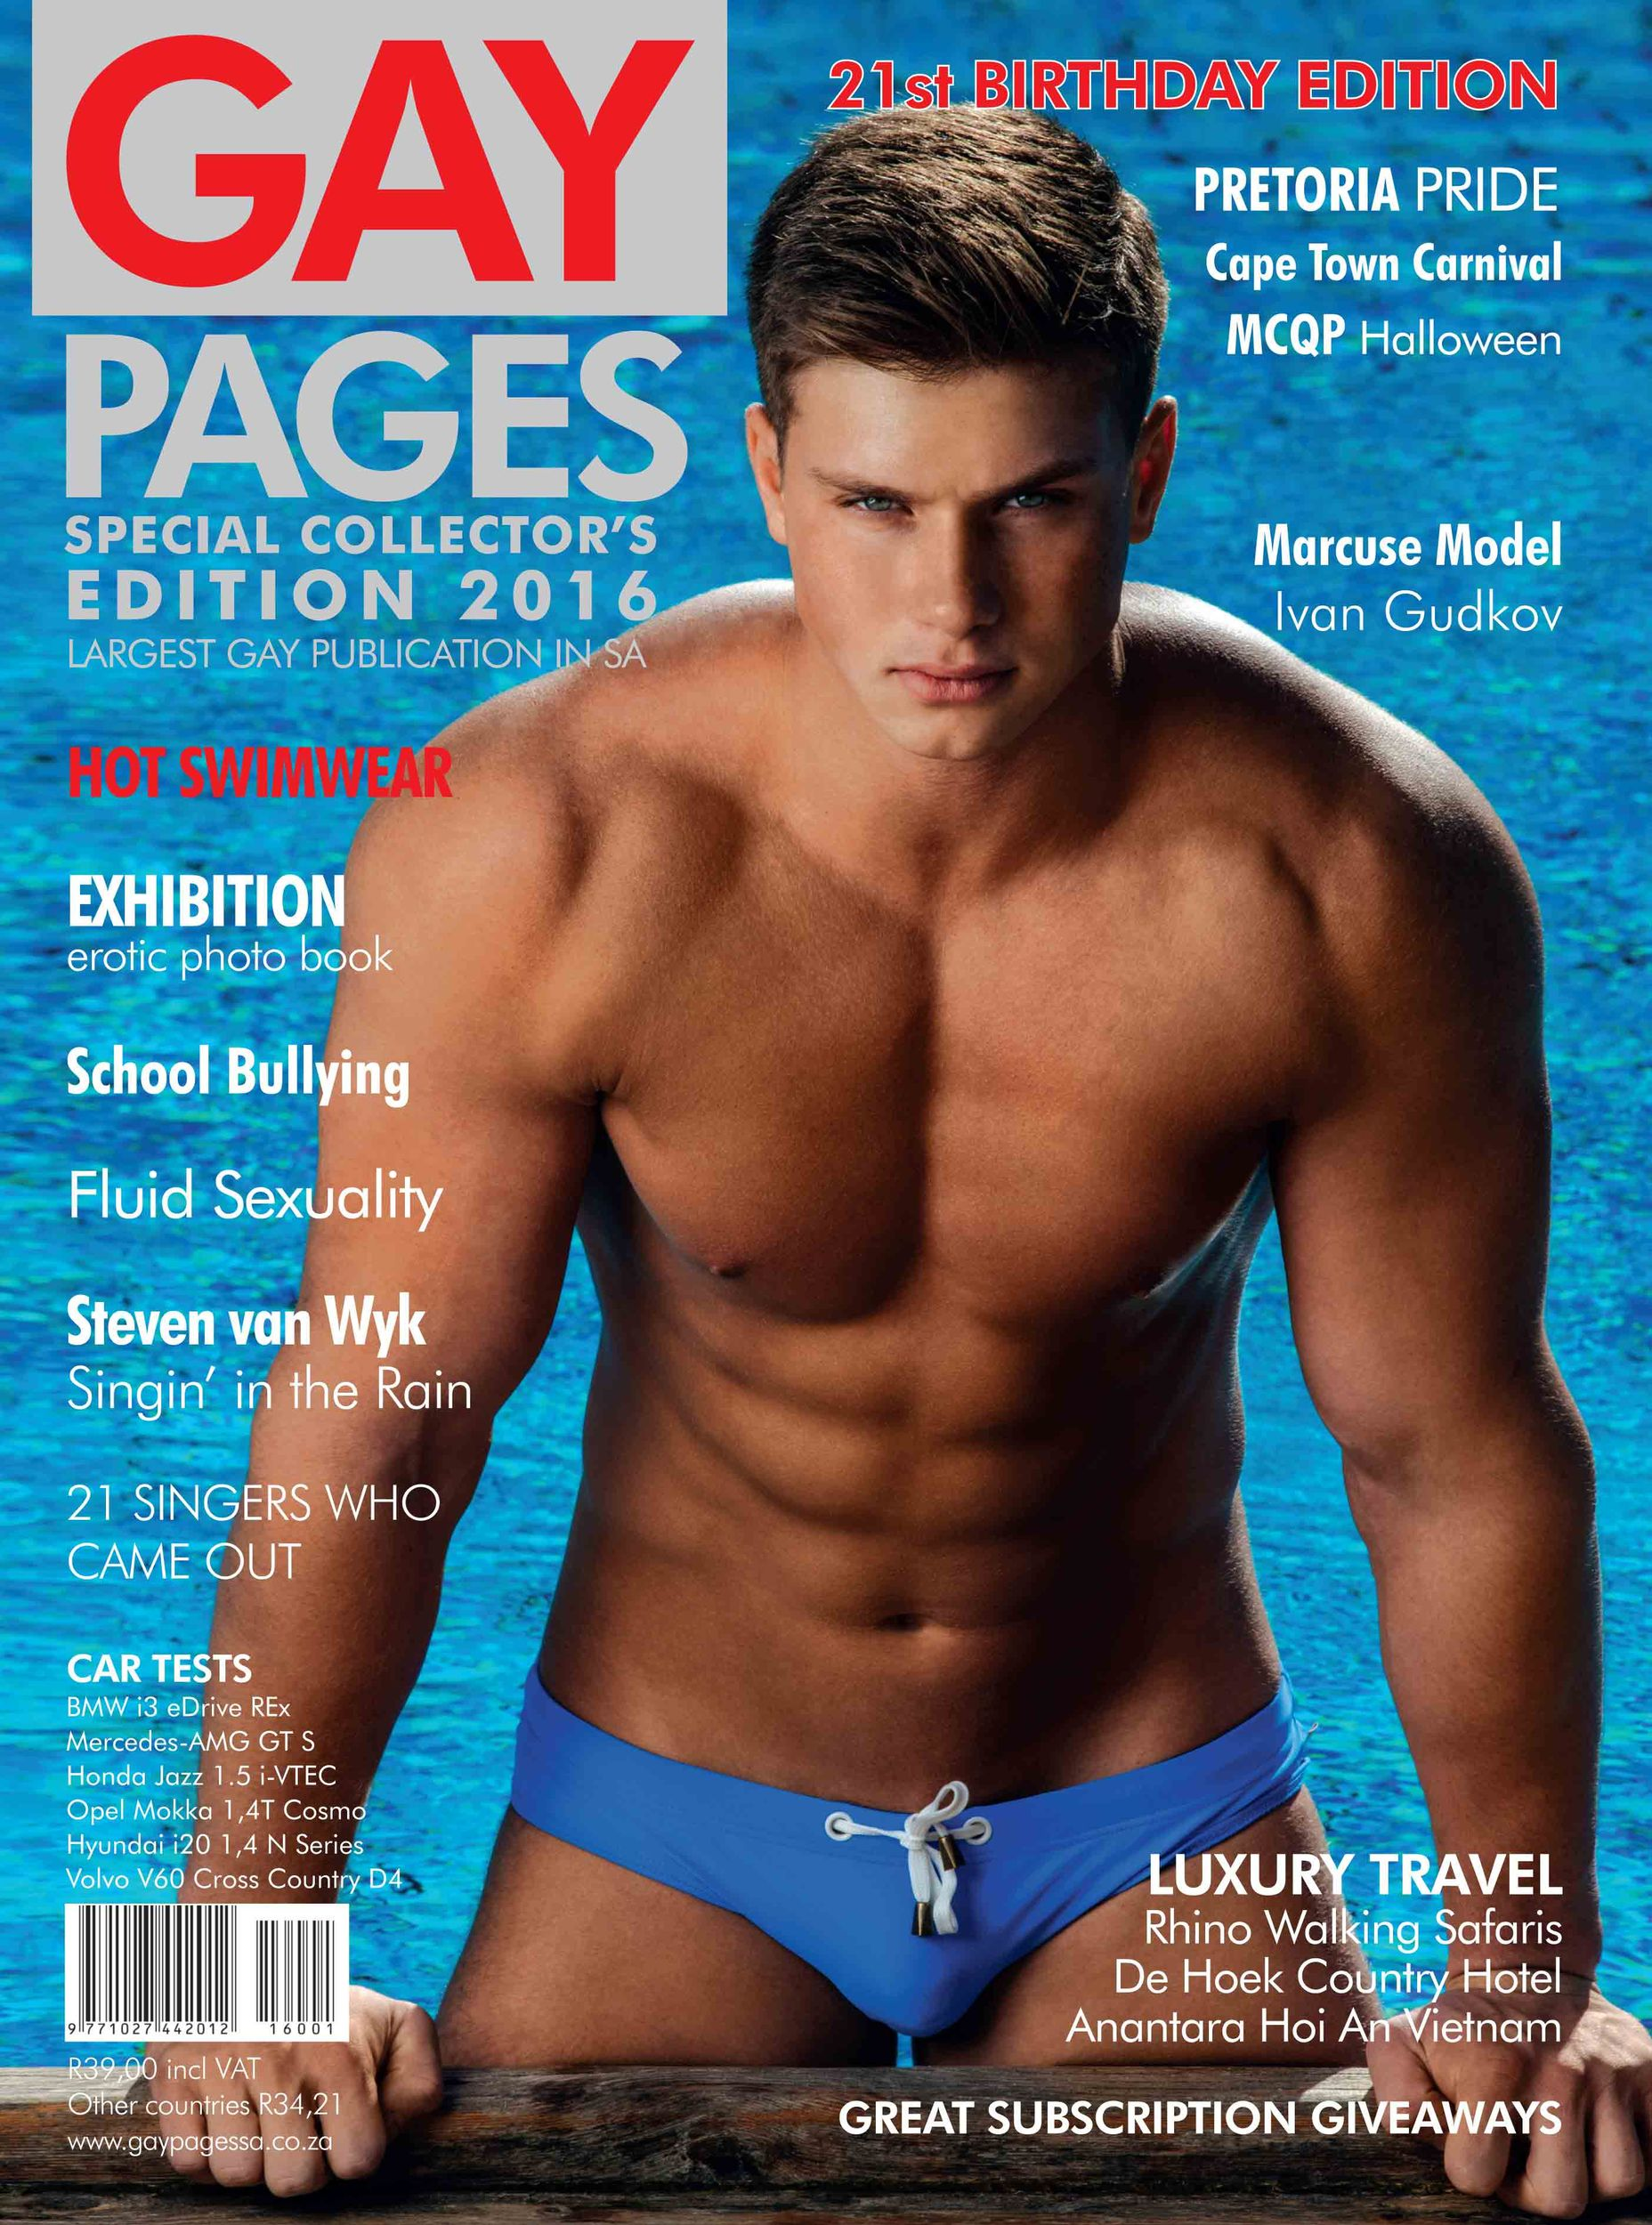 namibian subscriptions  u2013 gay pages sa